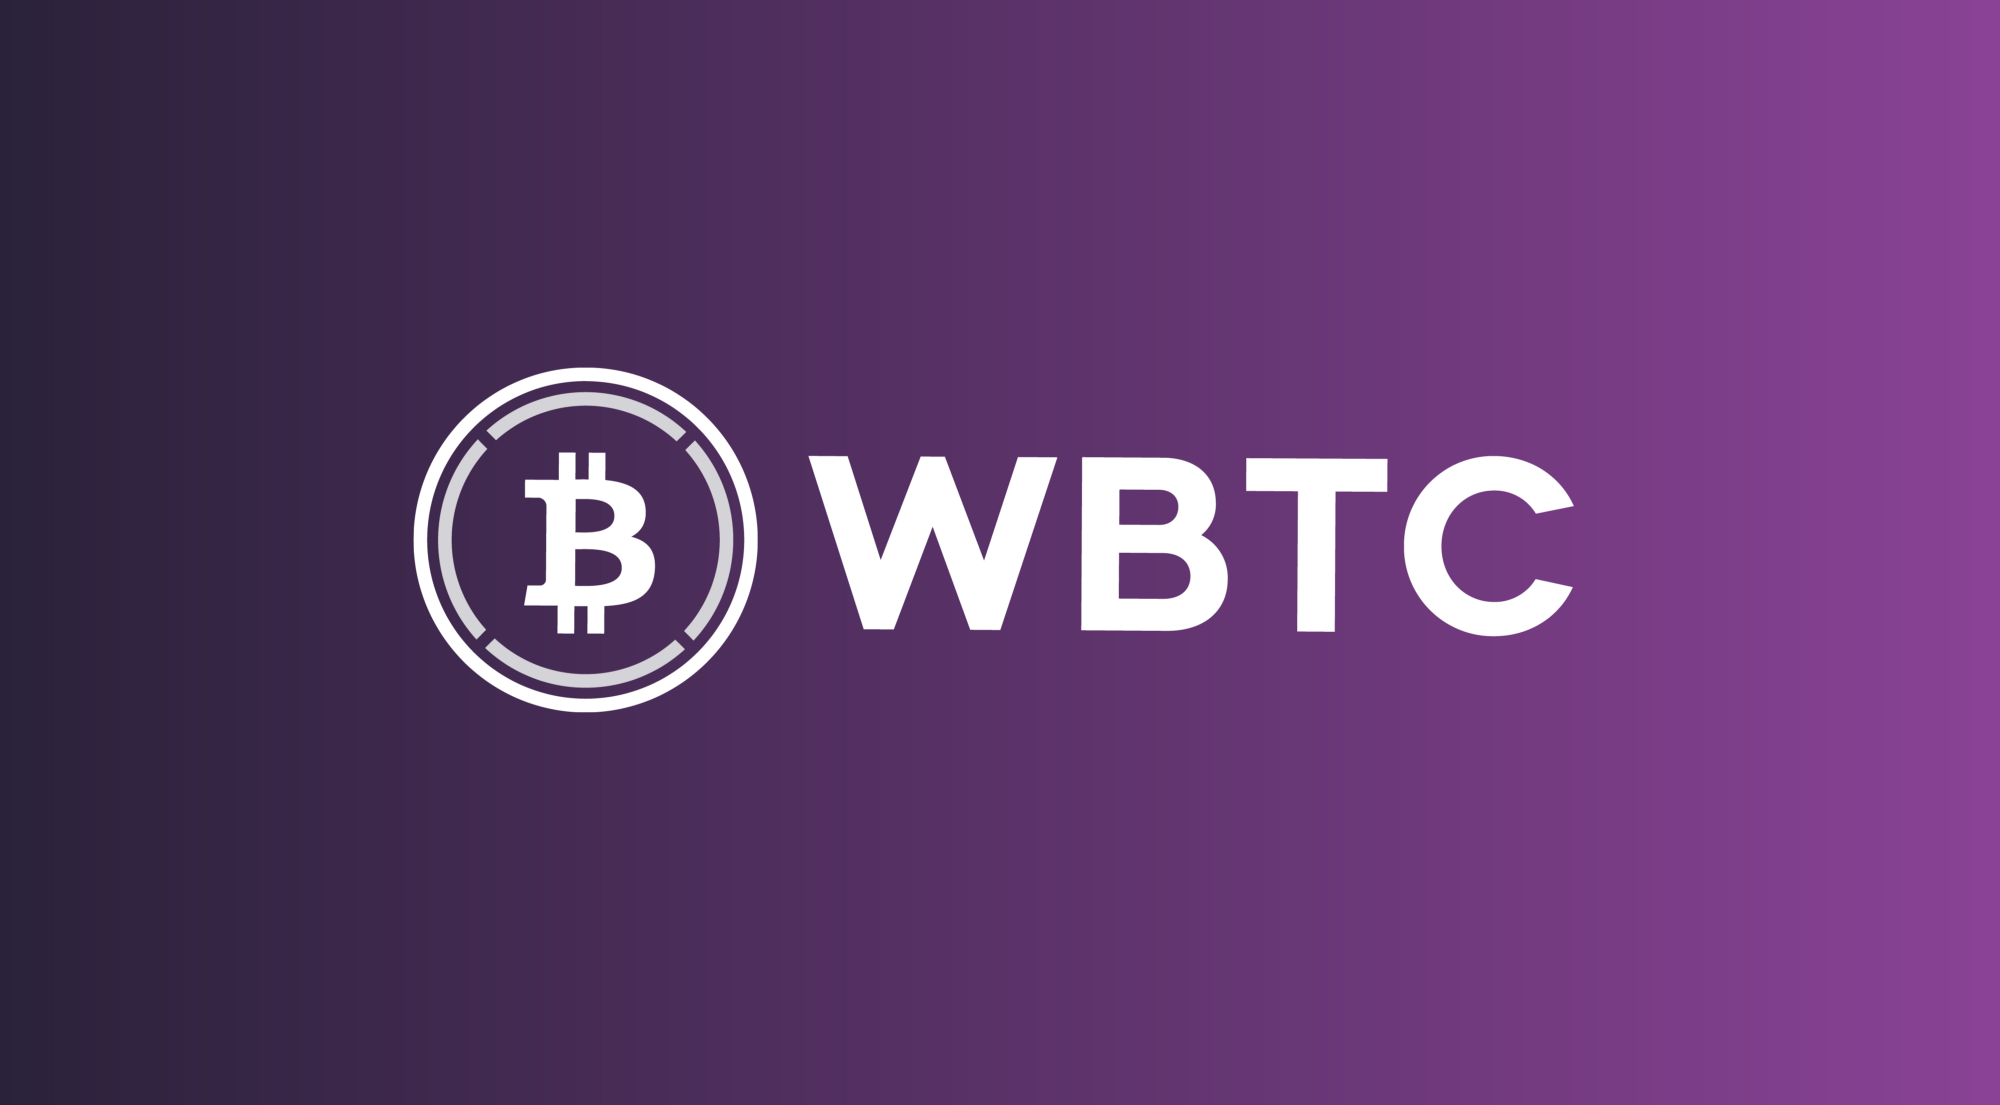 WBTC: A Community Effort to Bring Bitcoin to Ethereum